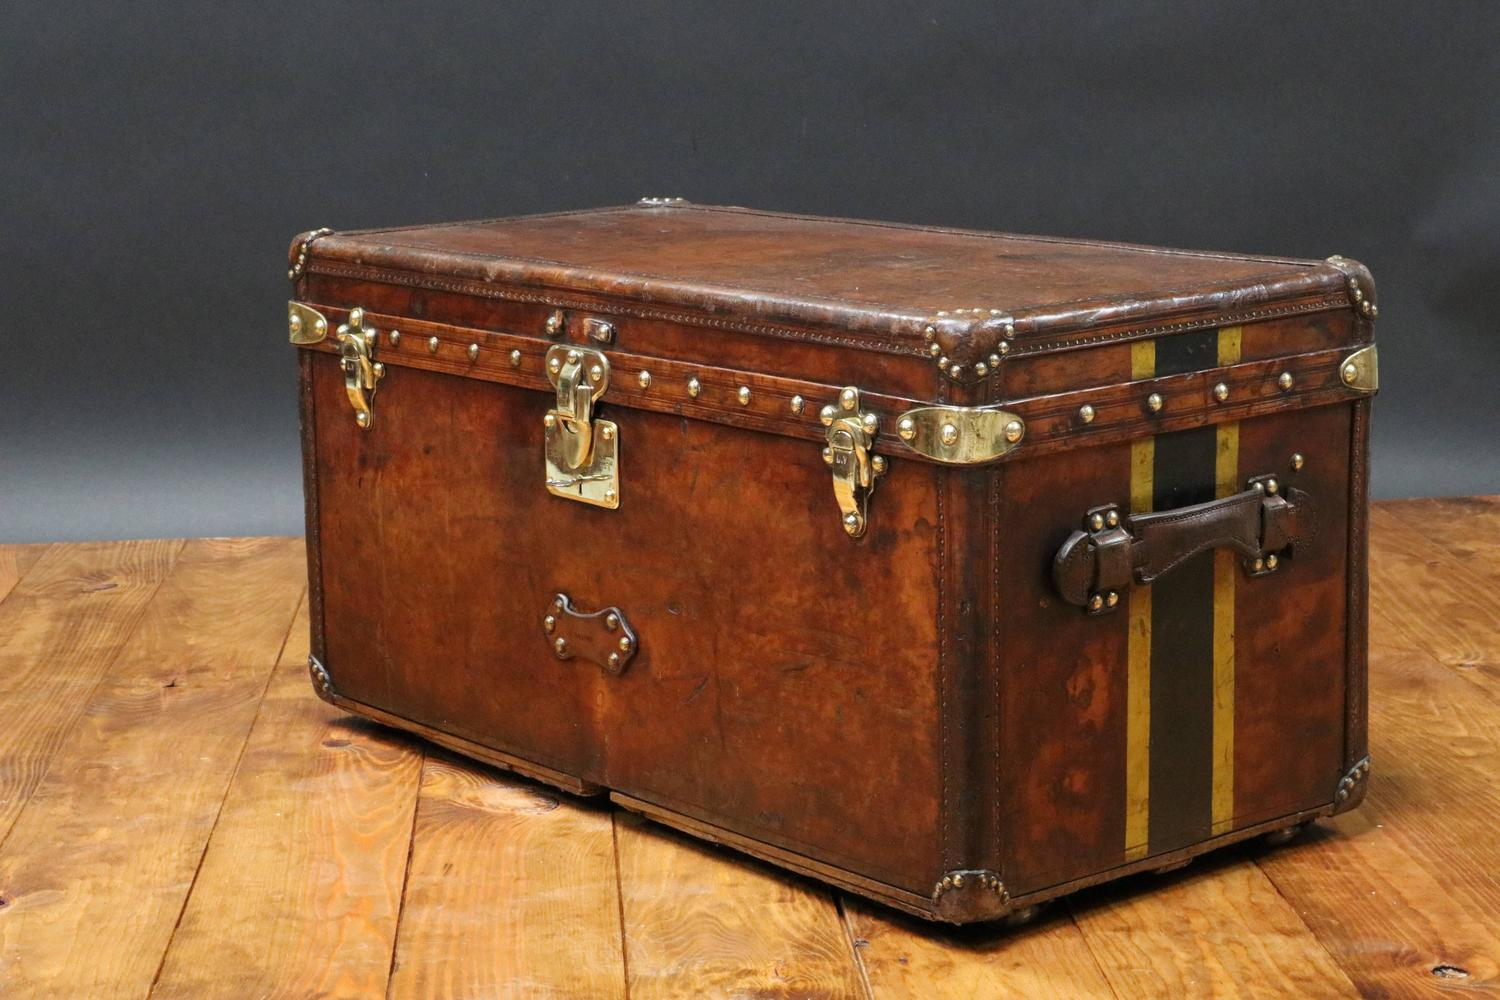 1920s Louis Vuitton Leather Trunk Malle Louis Vuitton Cuir At 1stdibs